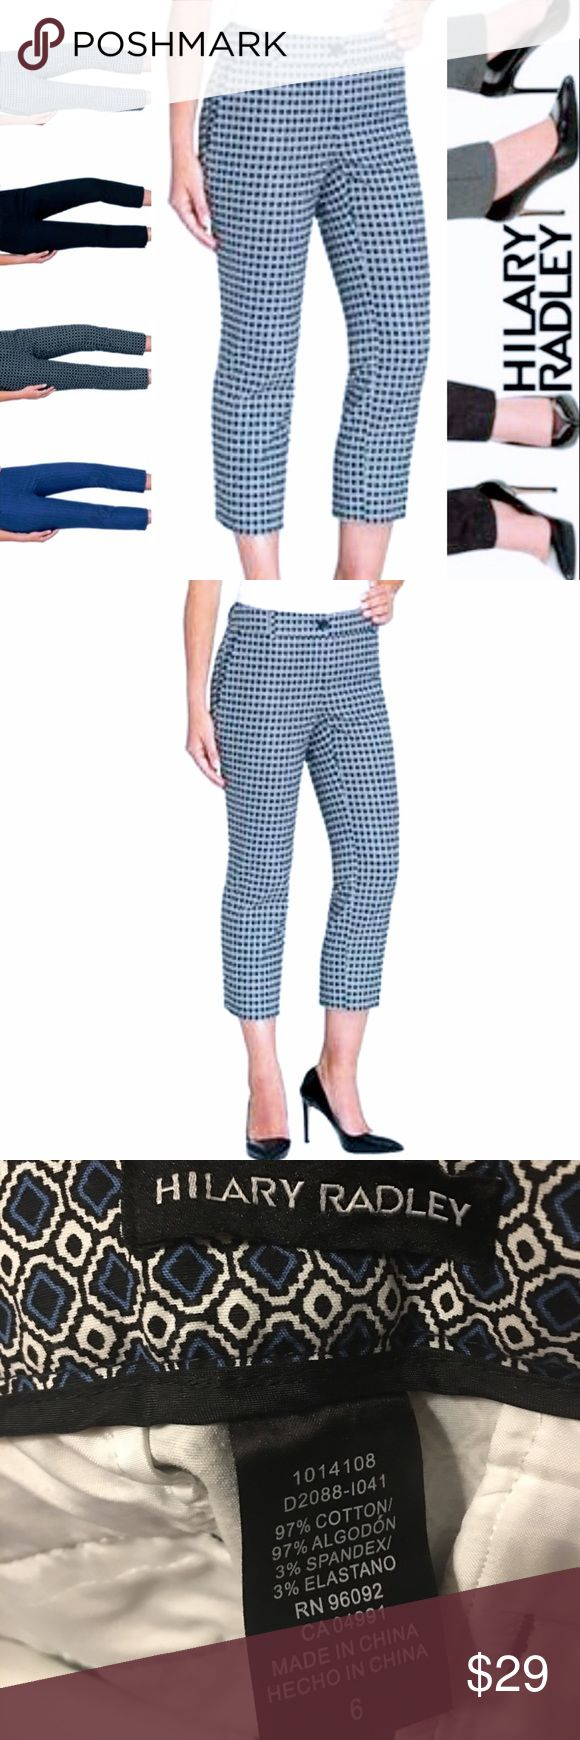 """HILARY RADLEY CROPPED PATTERN TROUSERS NORDSTROM Super fun diamond patterned, cropped pants, by Hilary Radley NY for Nordstrom. Navy/black/white. Perfect colors for the nautical trend upon us! Cotton/spandex blend. Button/zip front closure with functional, vertical slit, back pockets. Inseam is approximately 23"""", rise is approximately 8"""" and 7"""" at ankle. NWOT Awesome! Comes from a smoke free home 🏡 Bundle & save! Nordstrom Pants Ankle & Cropped"""